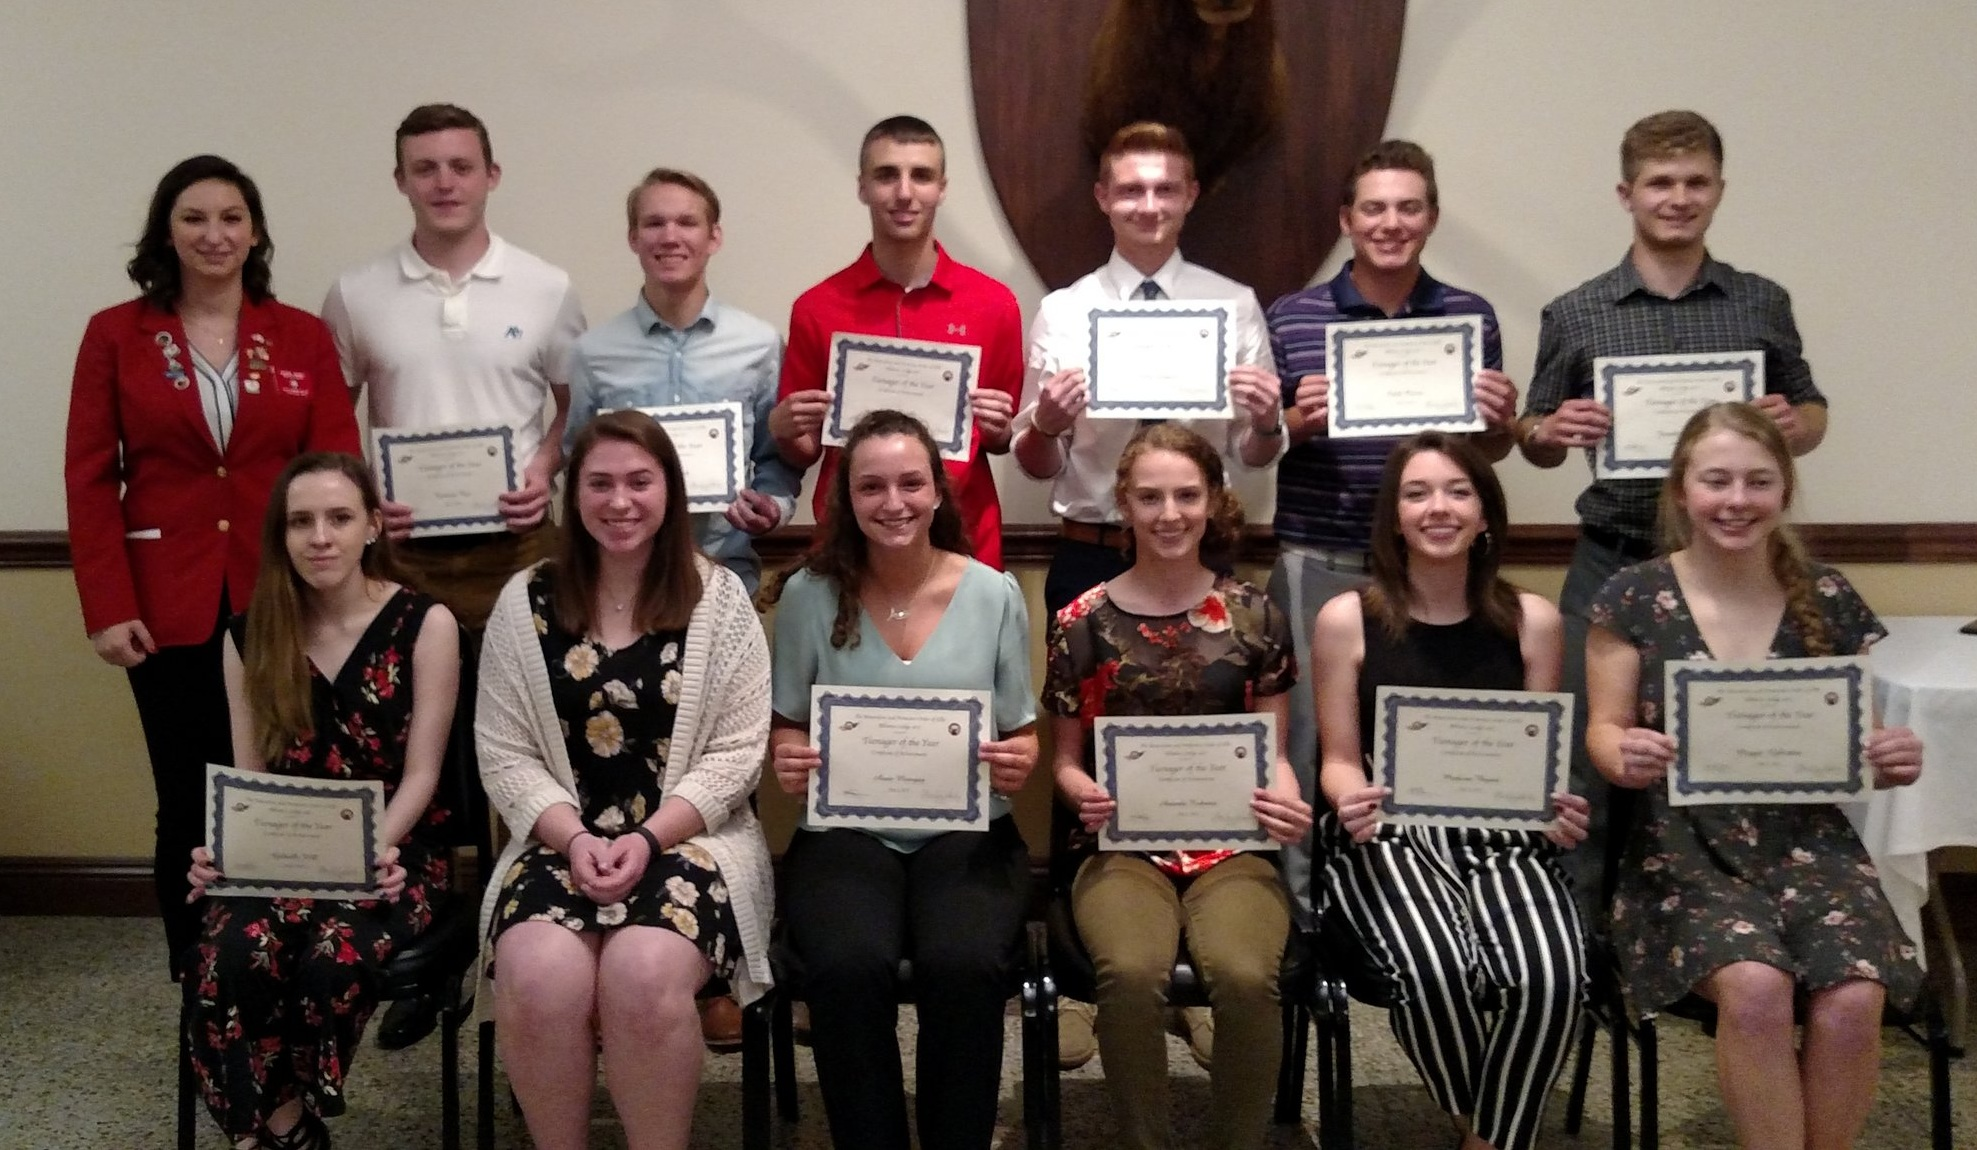 Teenagers of the Year from: Alliance, Marlington, West Branch, Sebring, St. Thomas, Louisville, and Minerva with Cassie Gabelt, Exalted Ruler